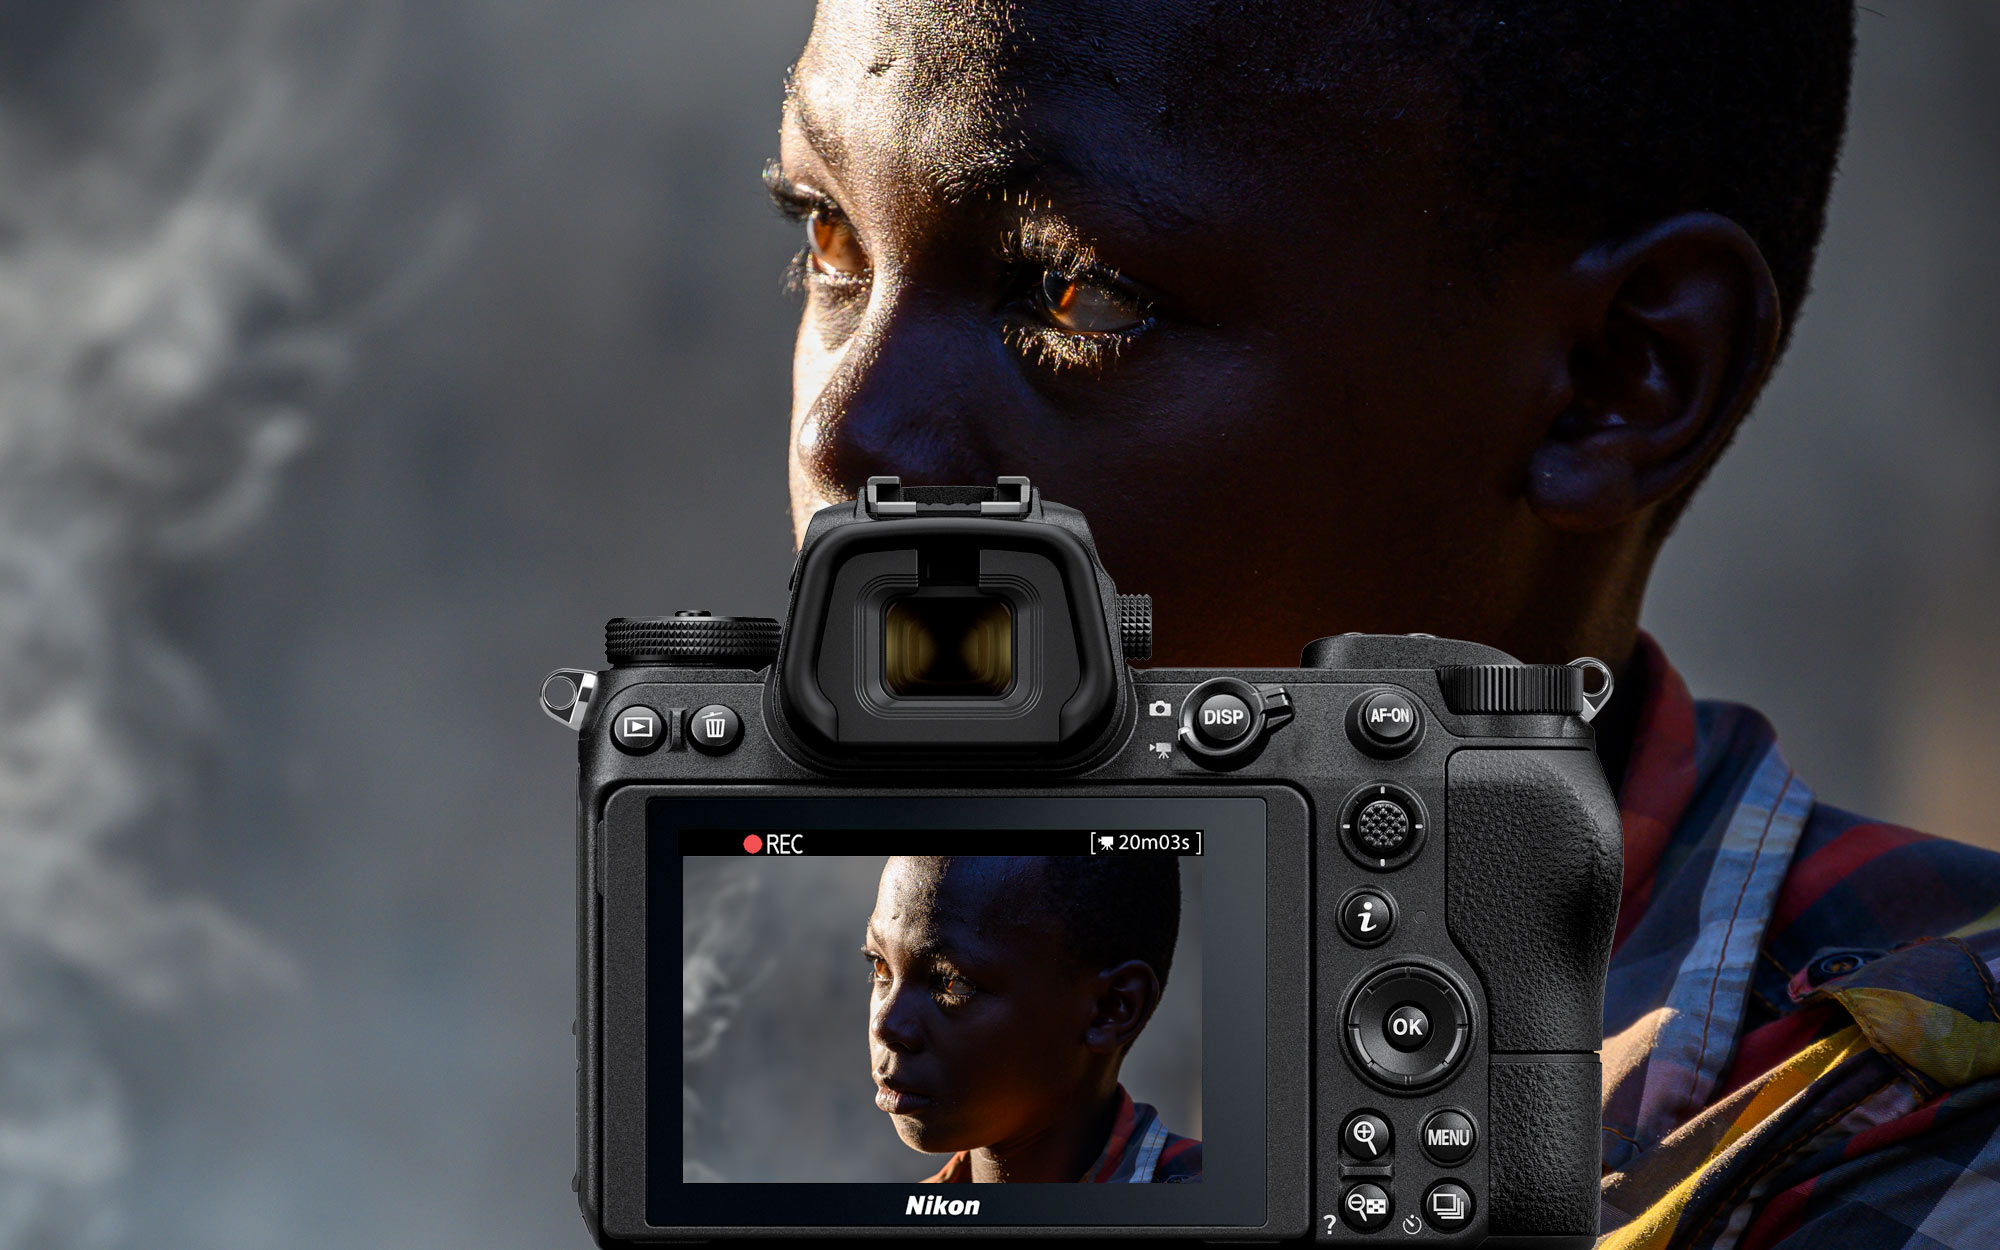 Photo of a person's face, with a Z camera inset and the same image on the LCD, taken with the NIKKOR Z 24-200mm f/4-6.3 VR